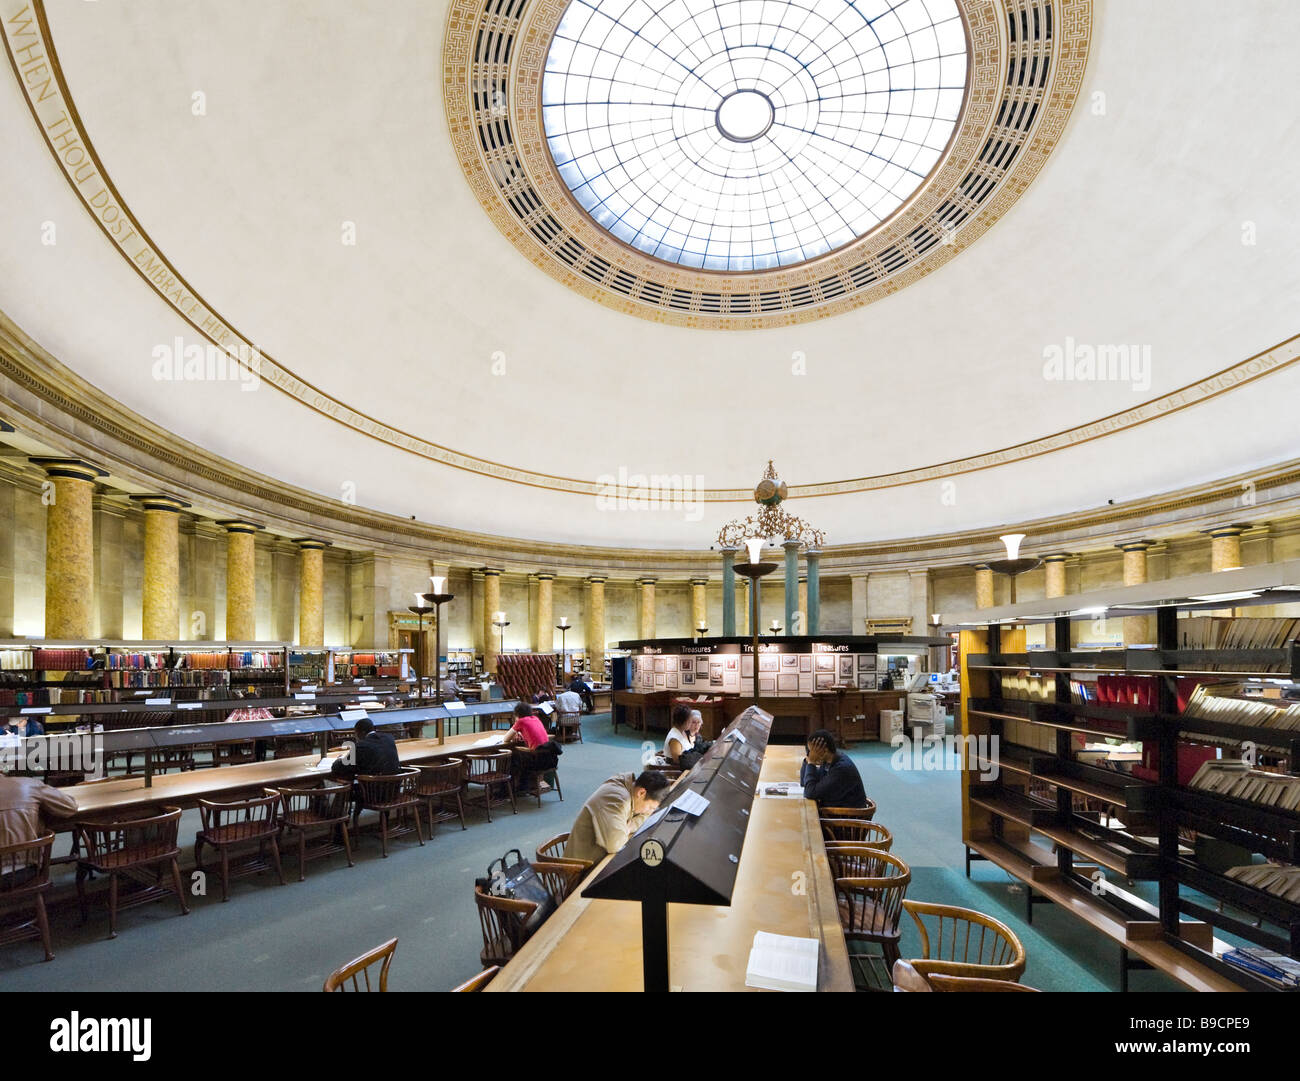 The main Reading Room of the Central Library, St Peter's Square, Manchester, England - Stock Image